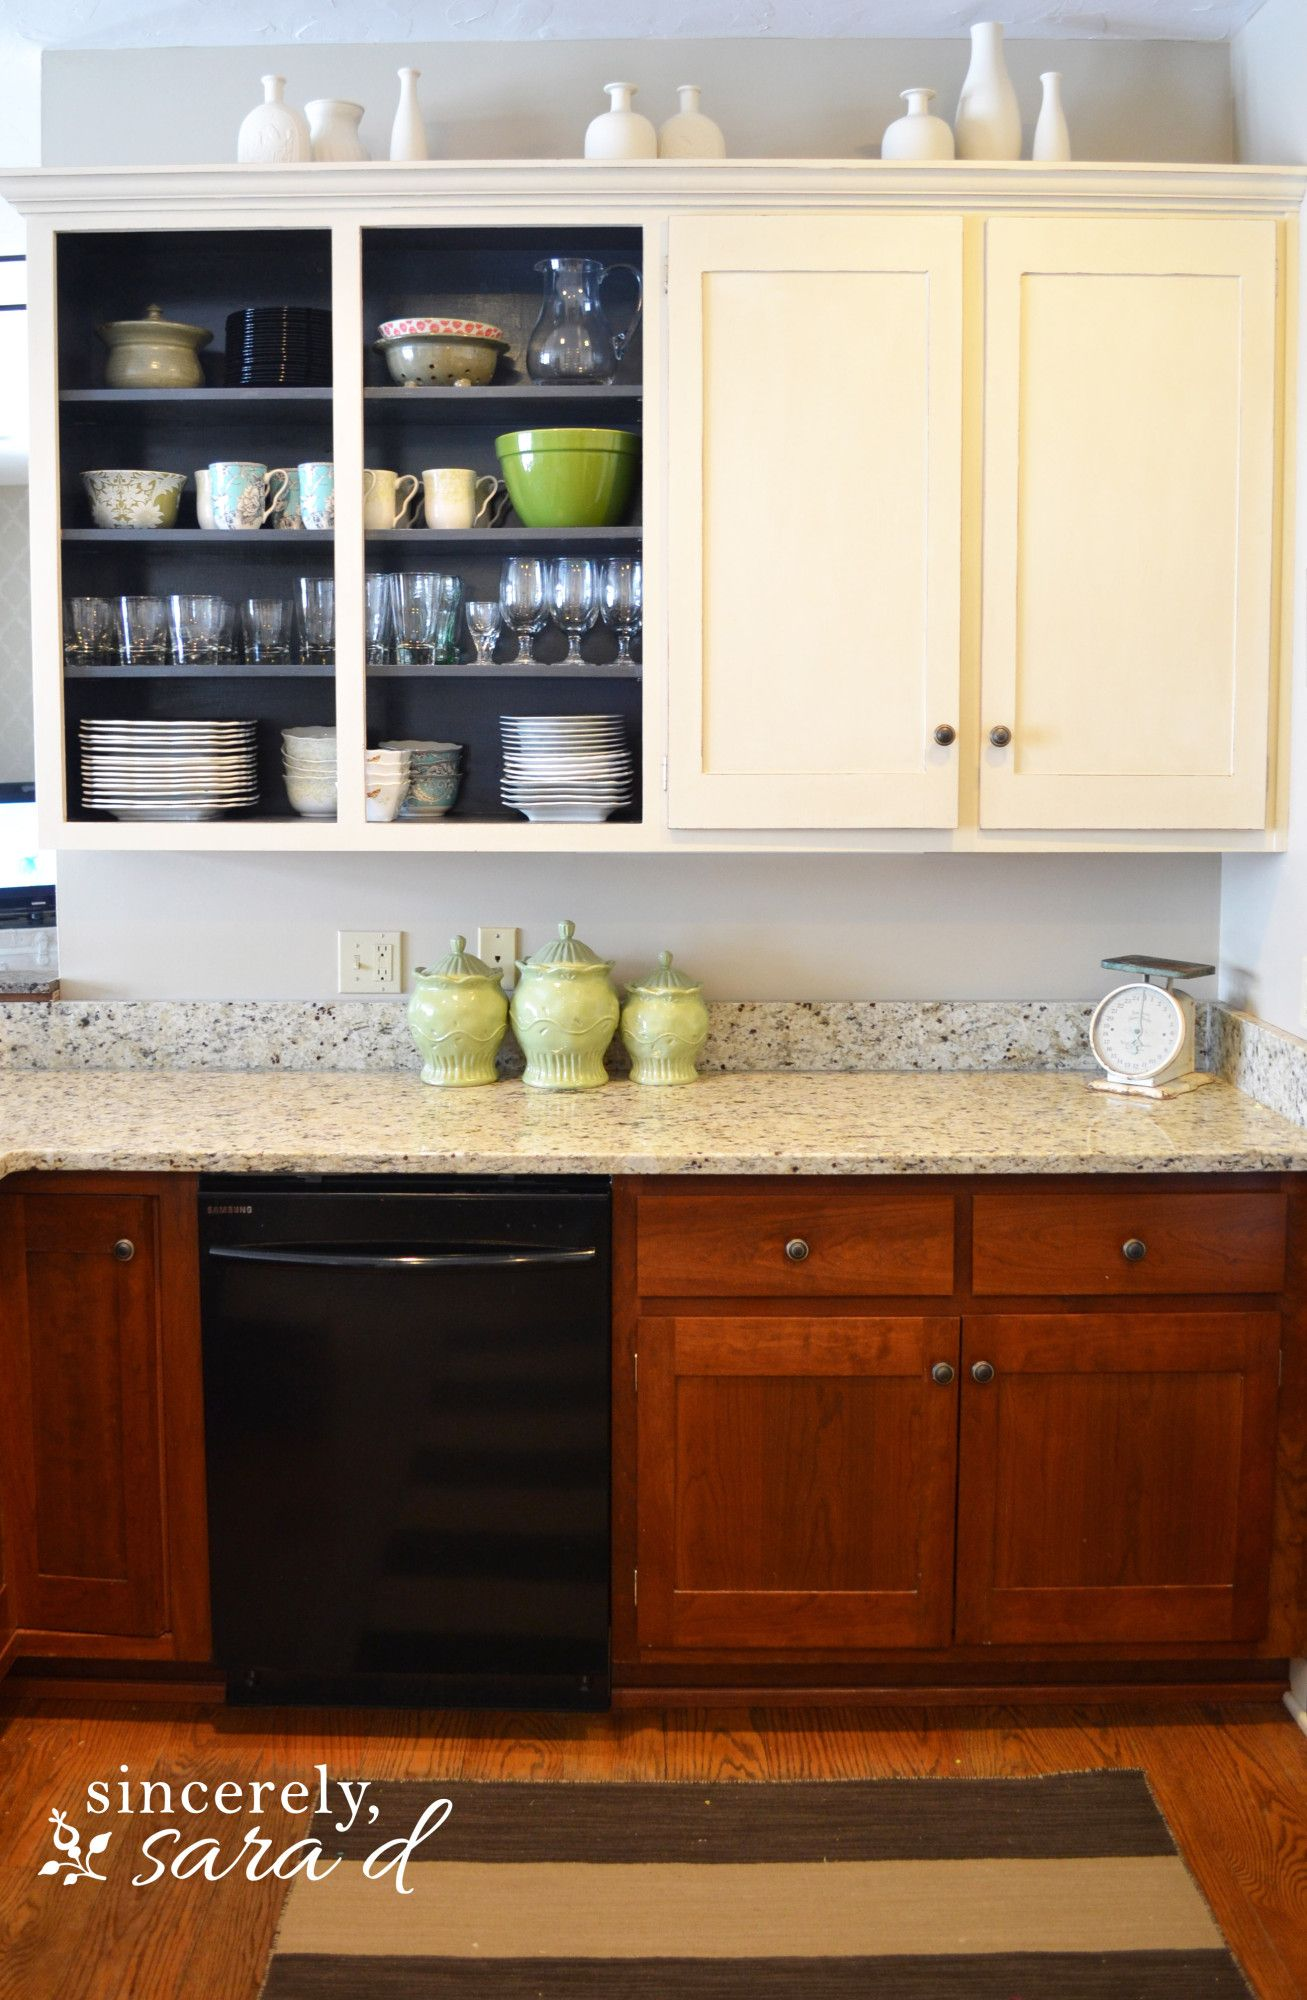 The Ultimate Guide To Cleaning Caring For Kitchen Cabinets Clean Kitchen Cabinets Kitchen Cabinets Deep Clean Kitchen